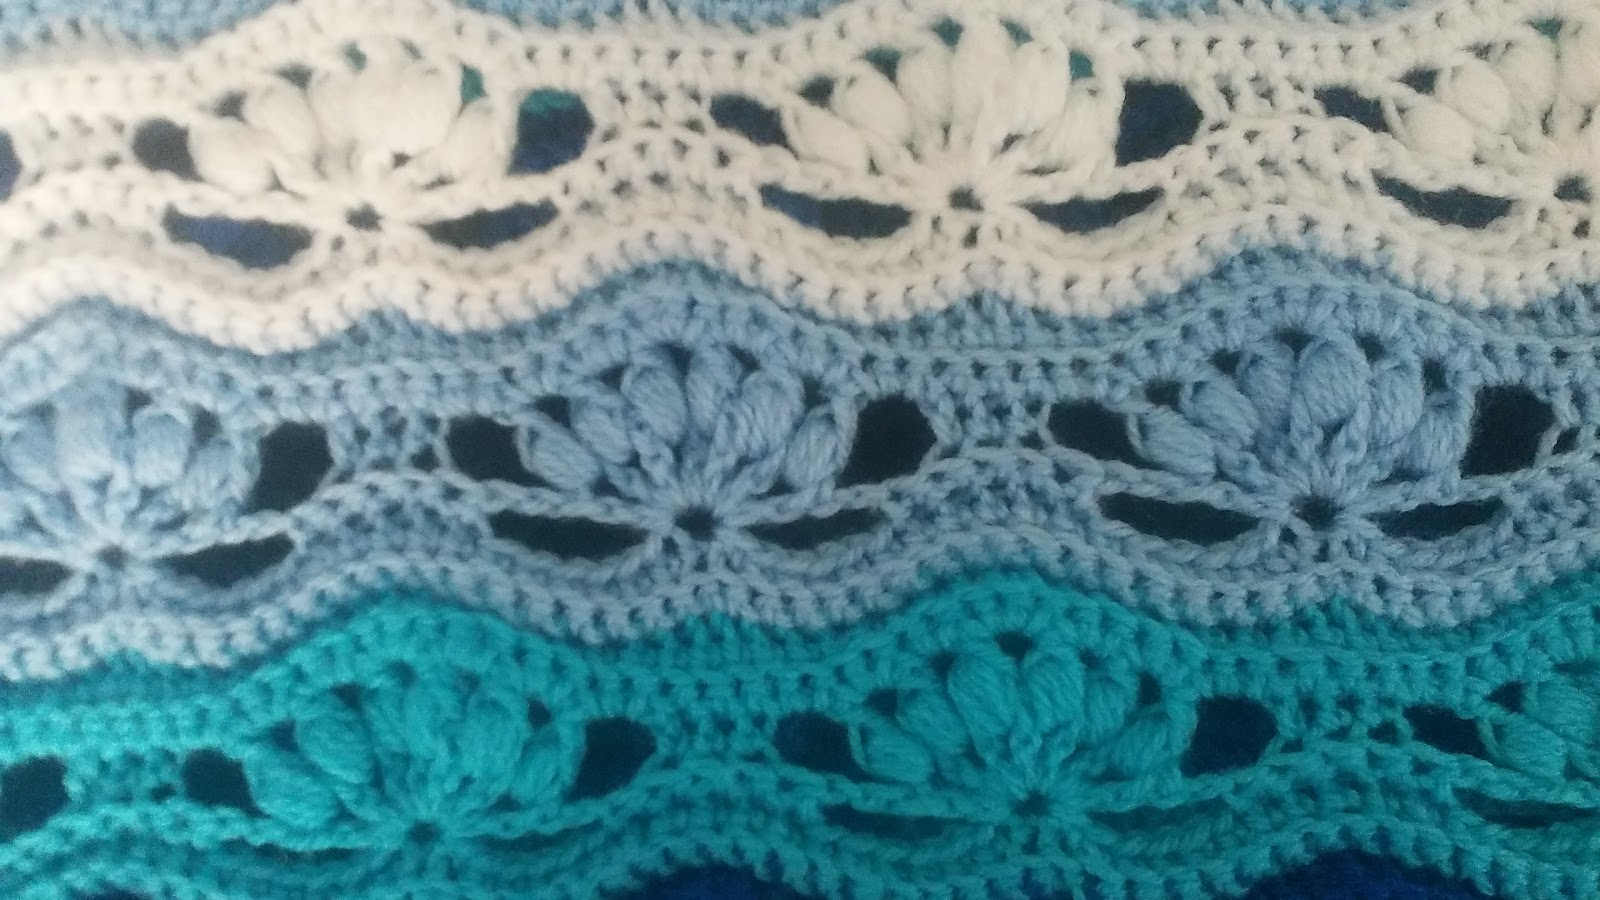 Crochet & Knitting: Wavy Blanket